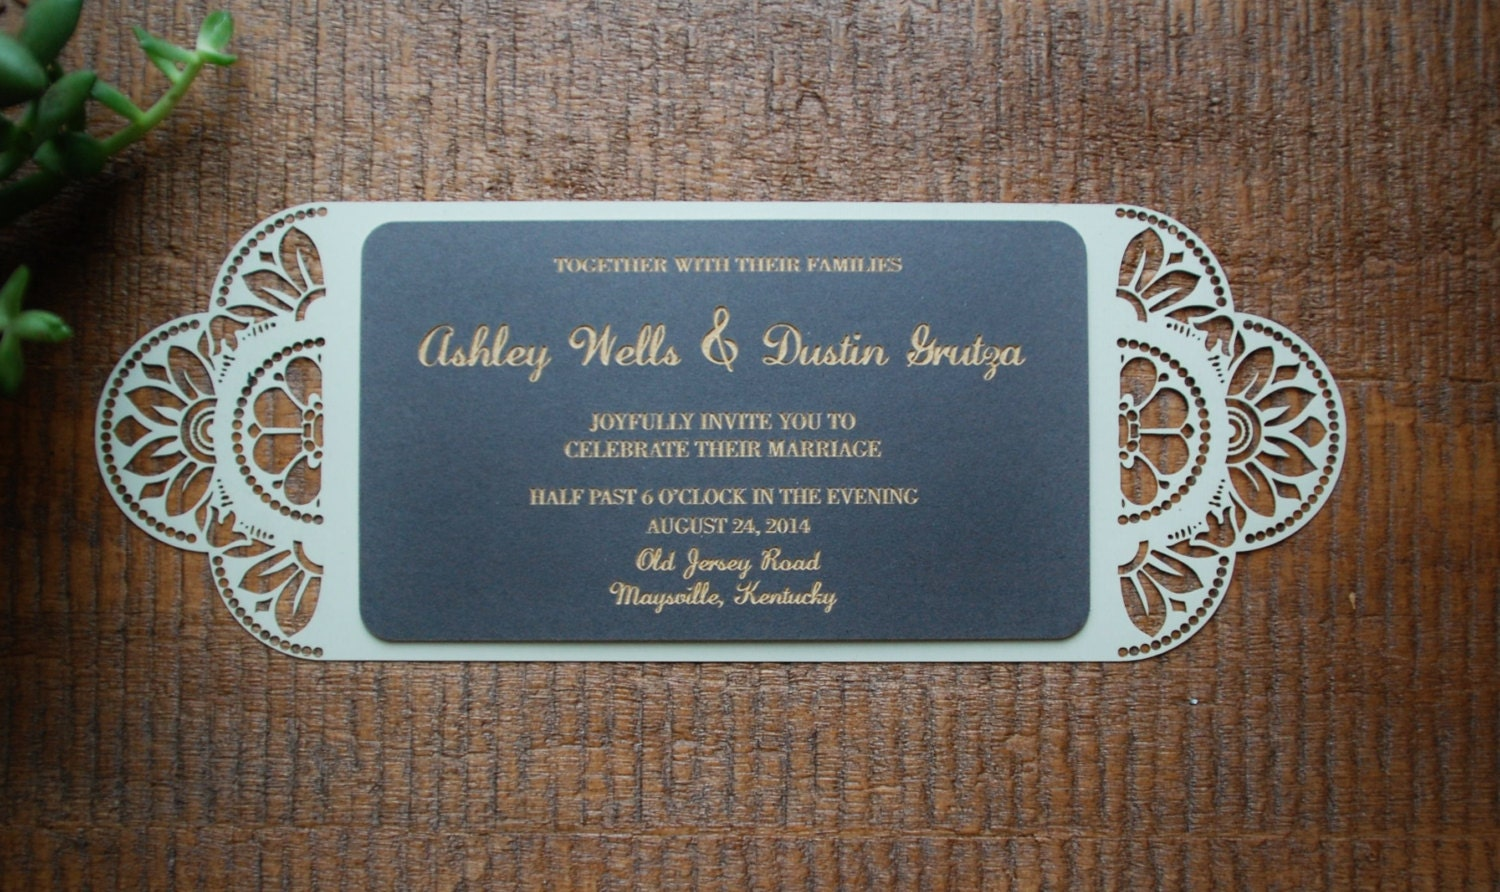 Textured Paper For Wedding Invitations: Paper Cut Textured Wedding Invitation